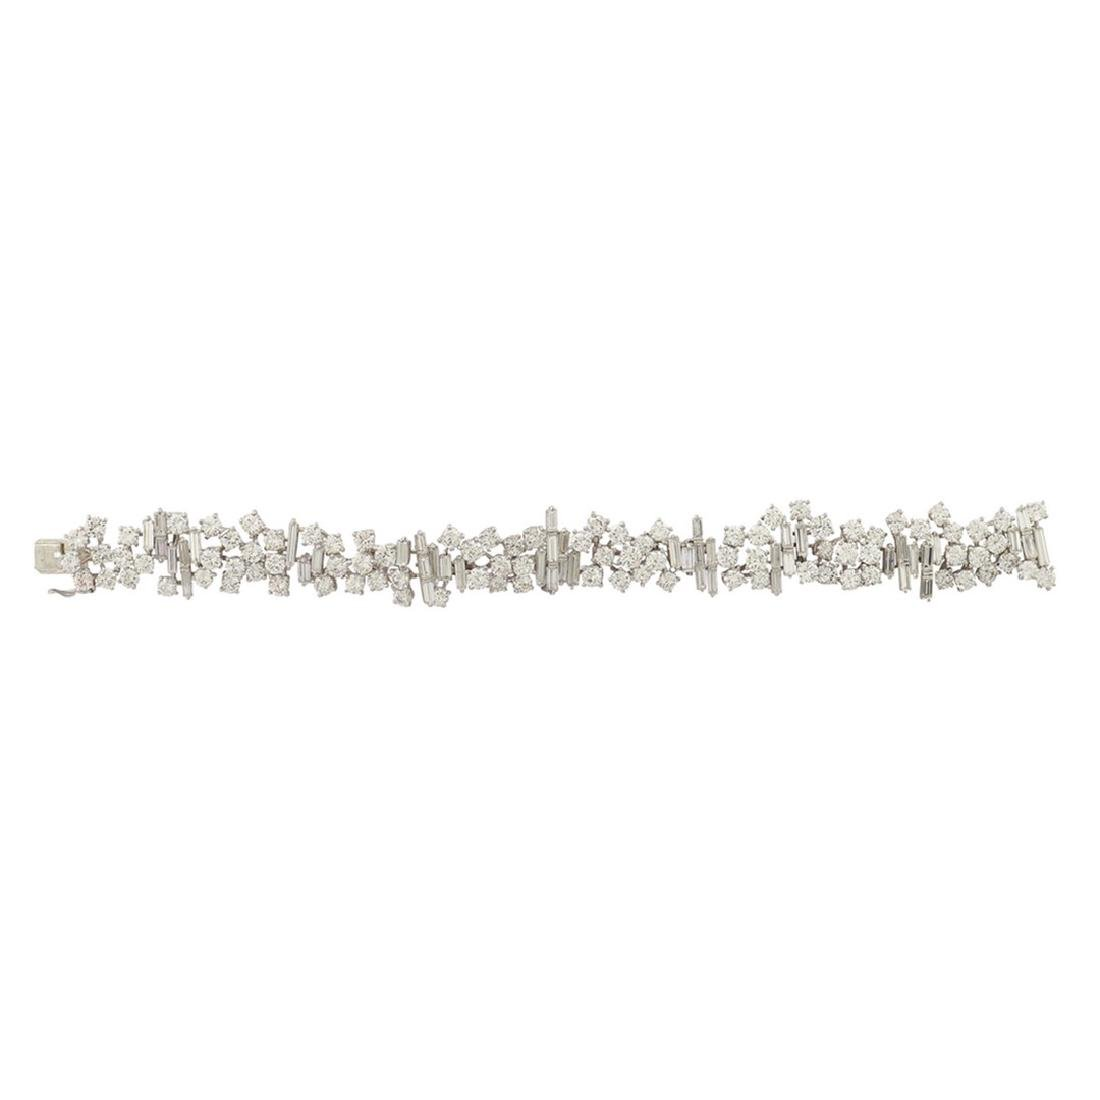 Massoni, a platinum bracelet with diamonds signed,